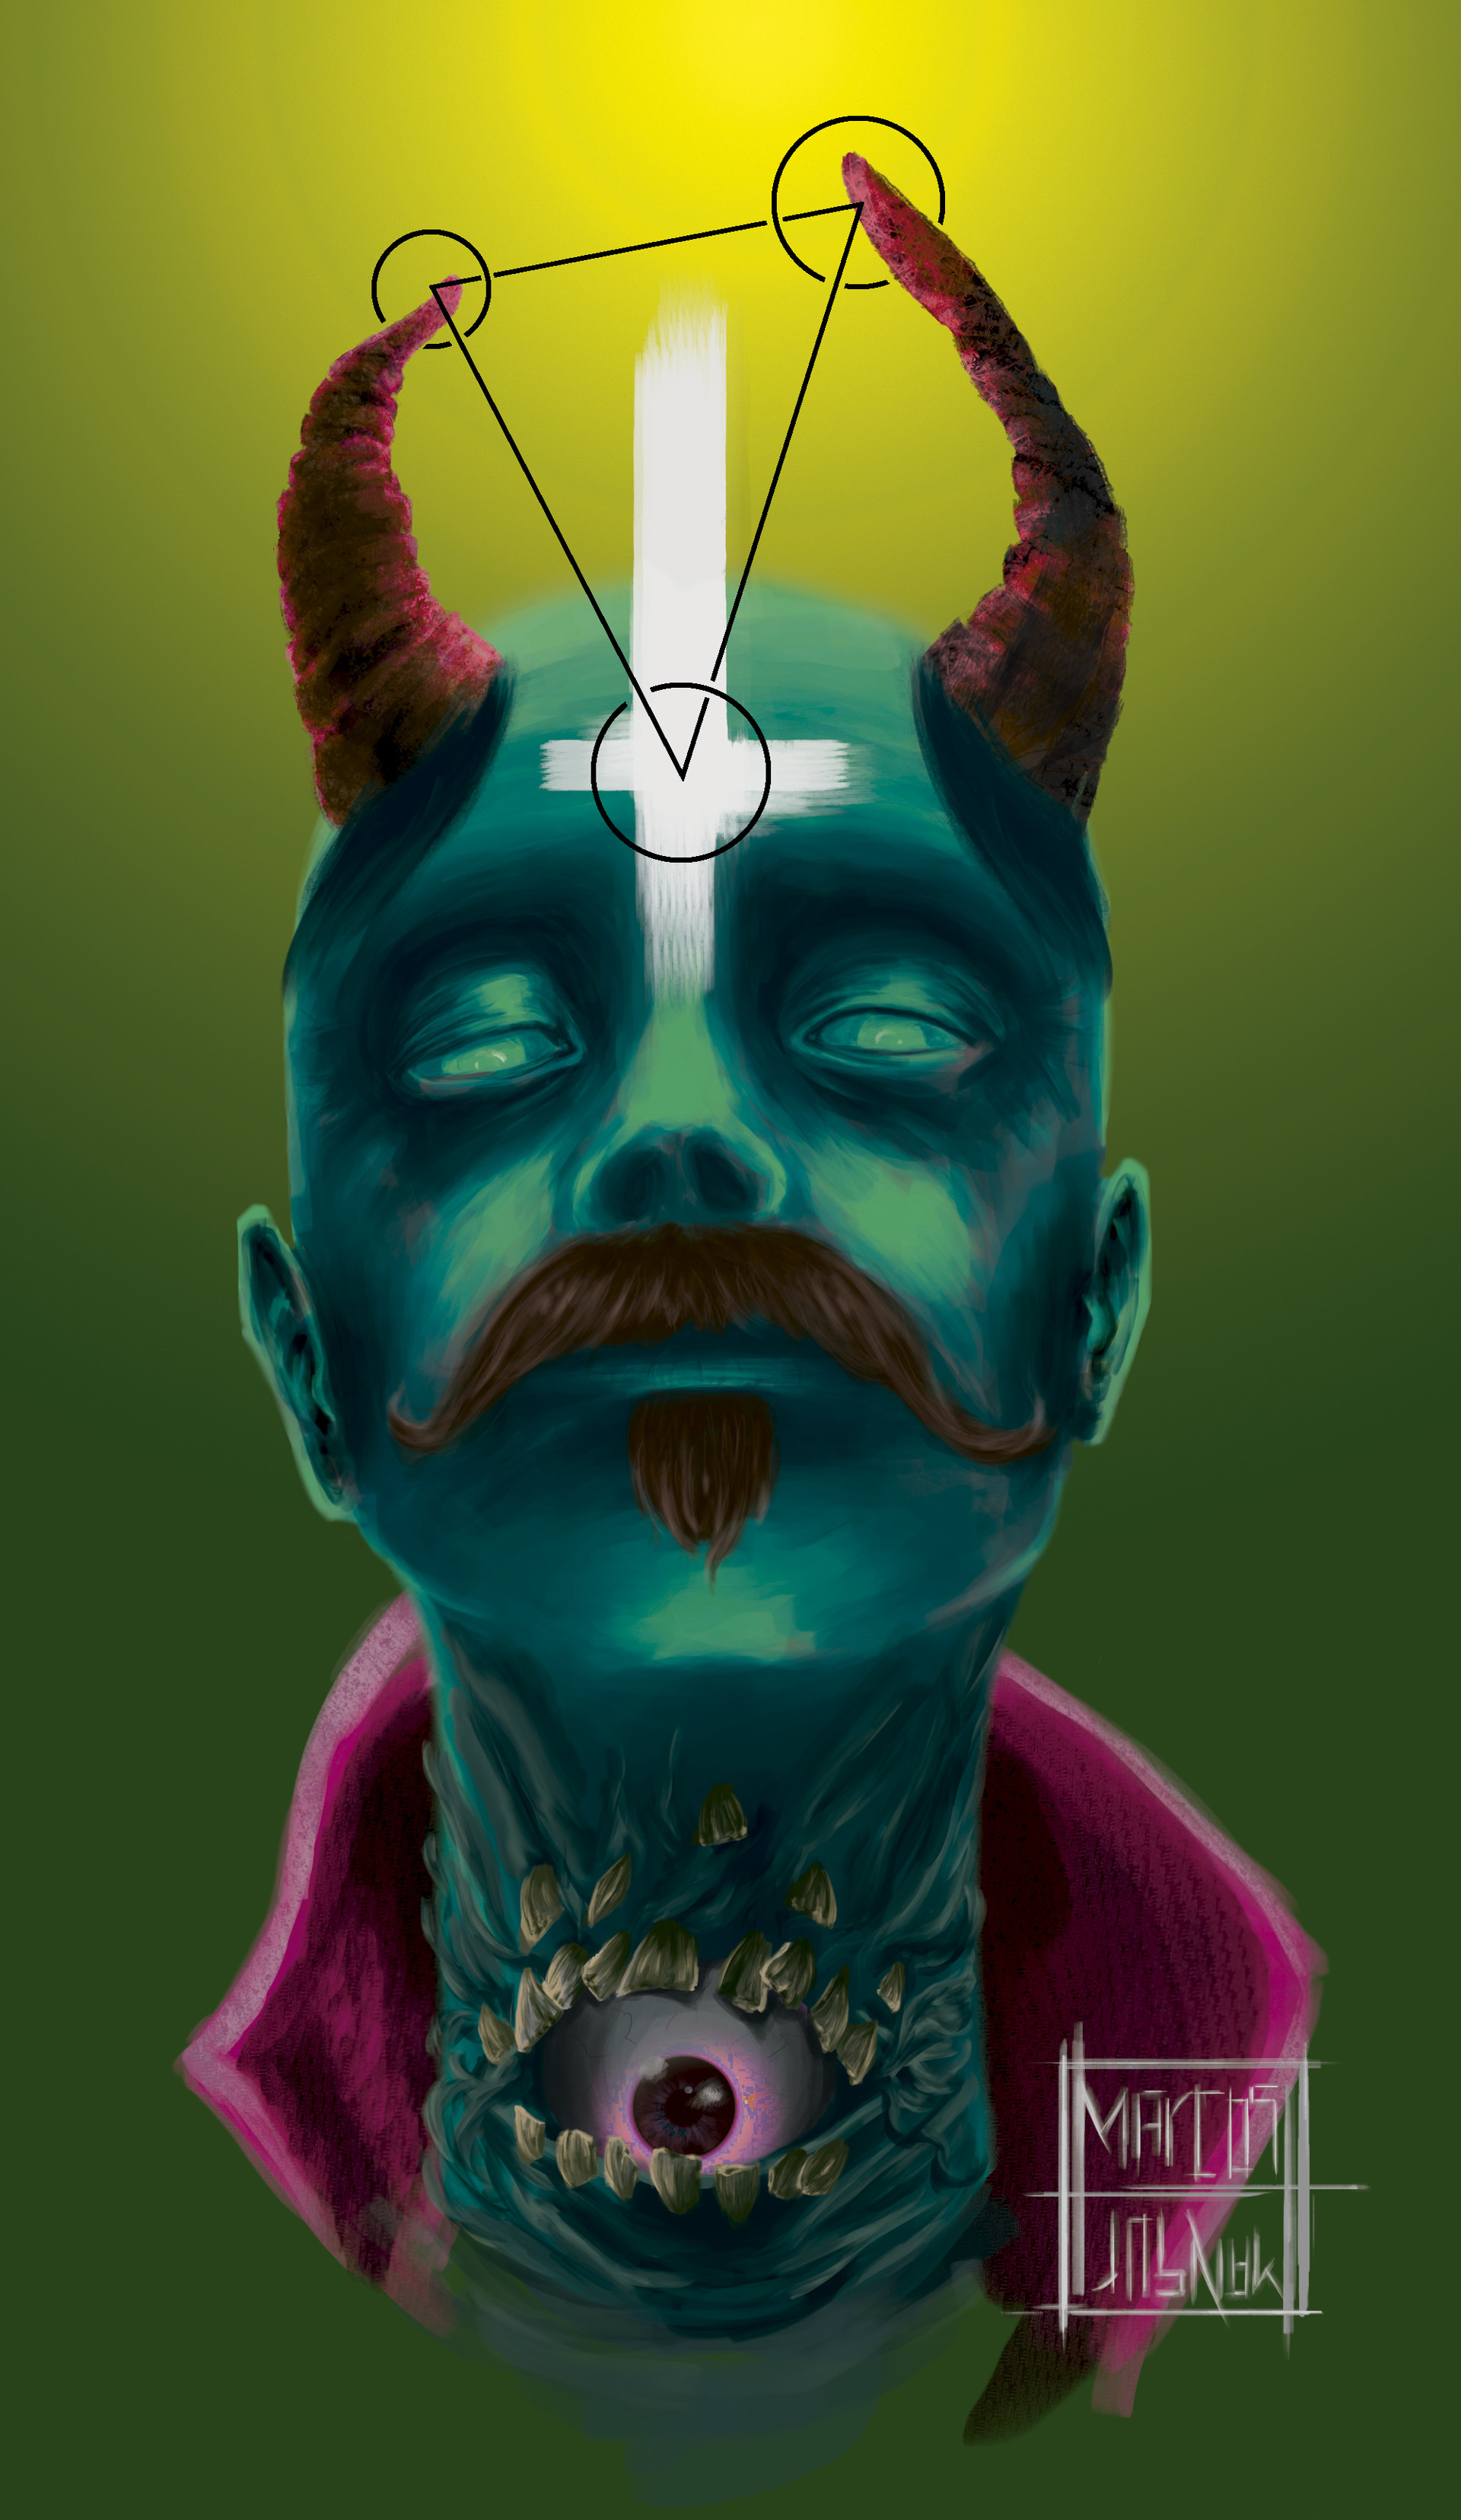 Marcos mansur devil cmyk color another maybe green skin